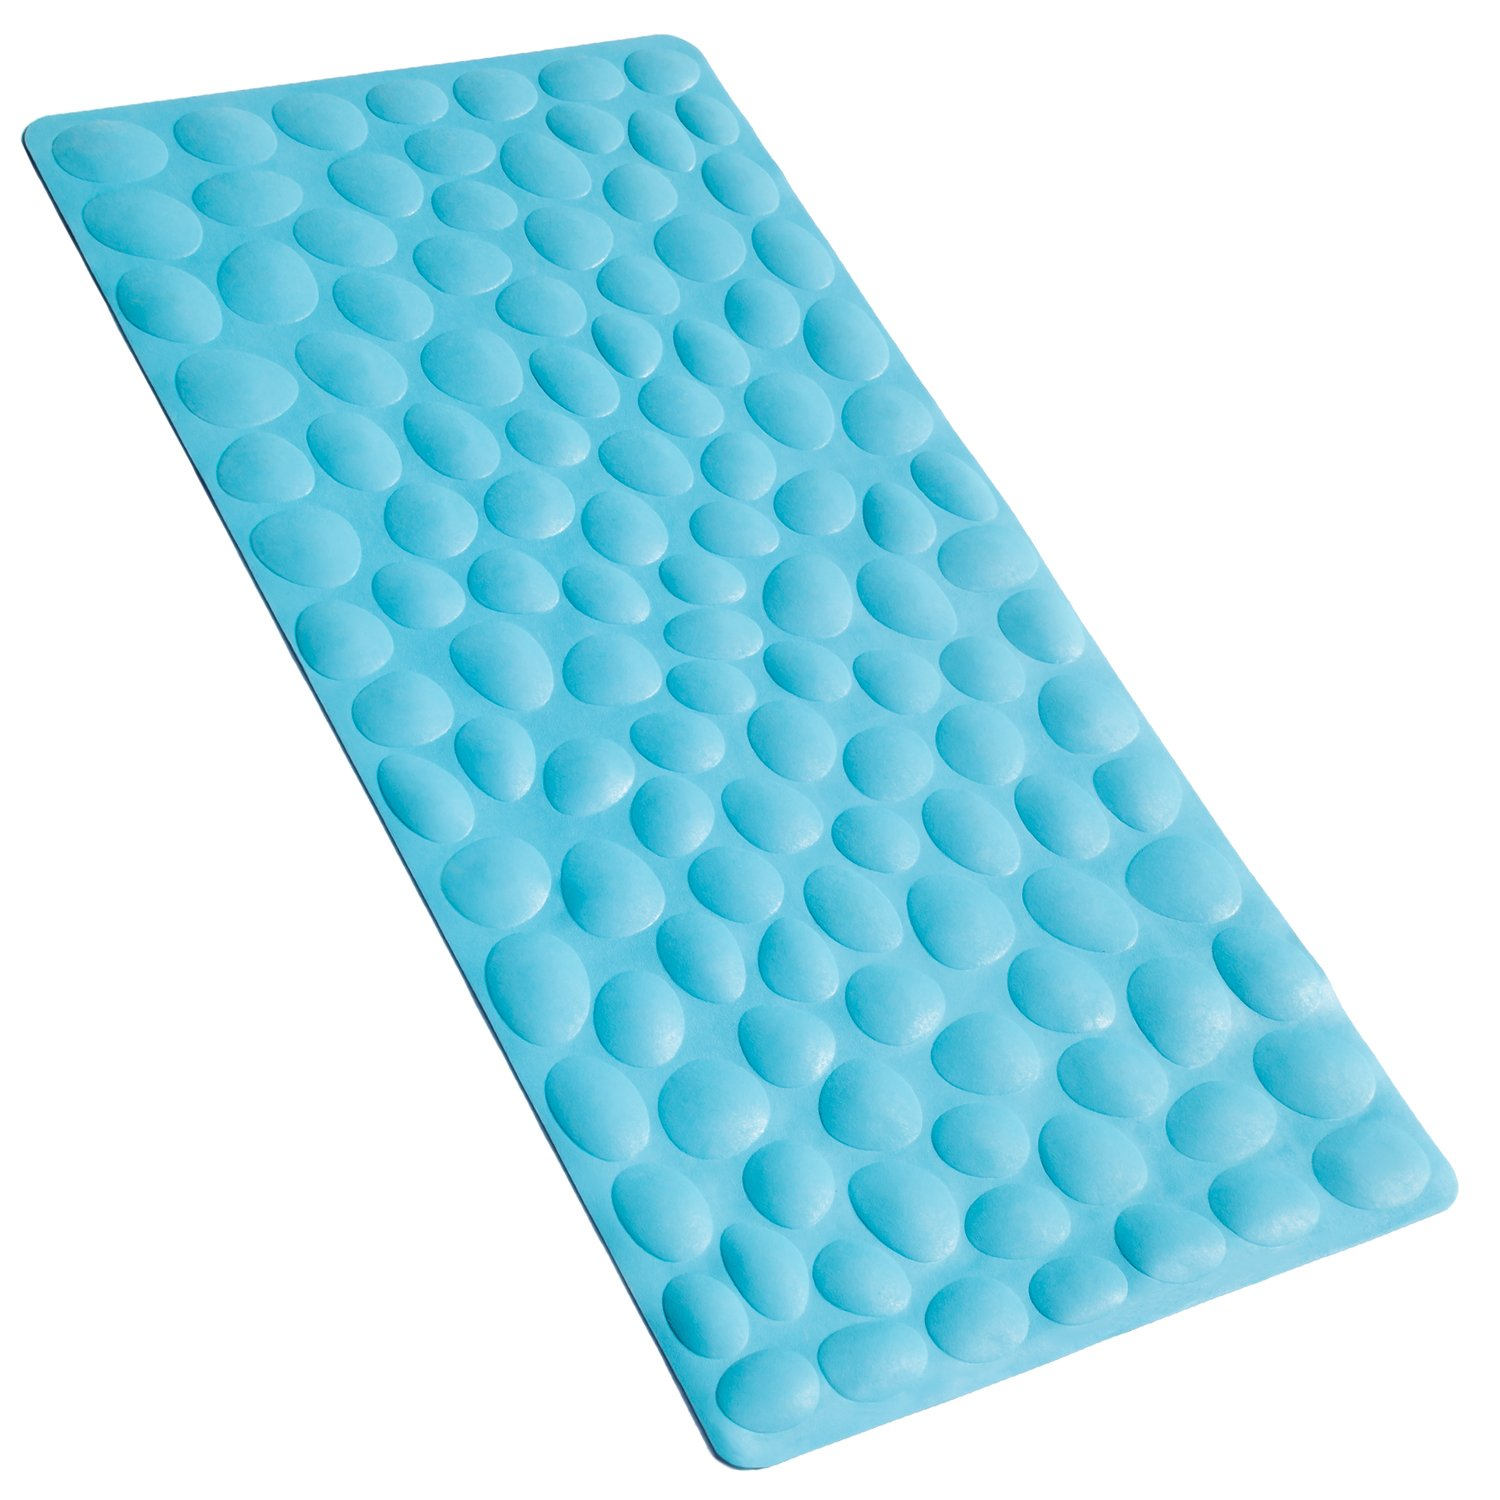 Othway Non Slip Bathtub Mat Soft Rubber Bathroom Bathmat